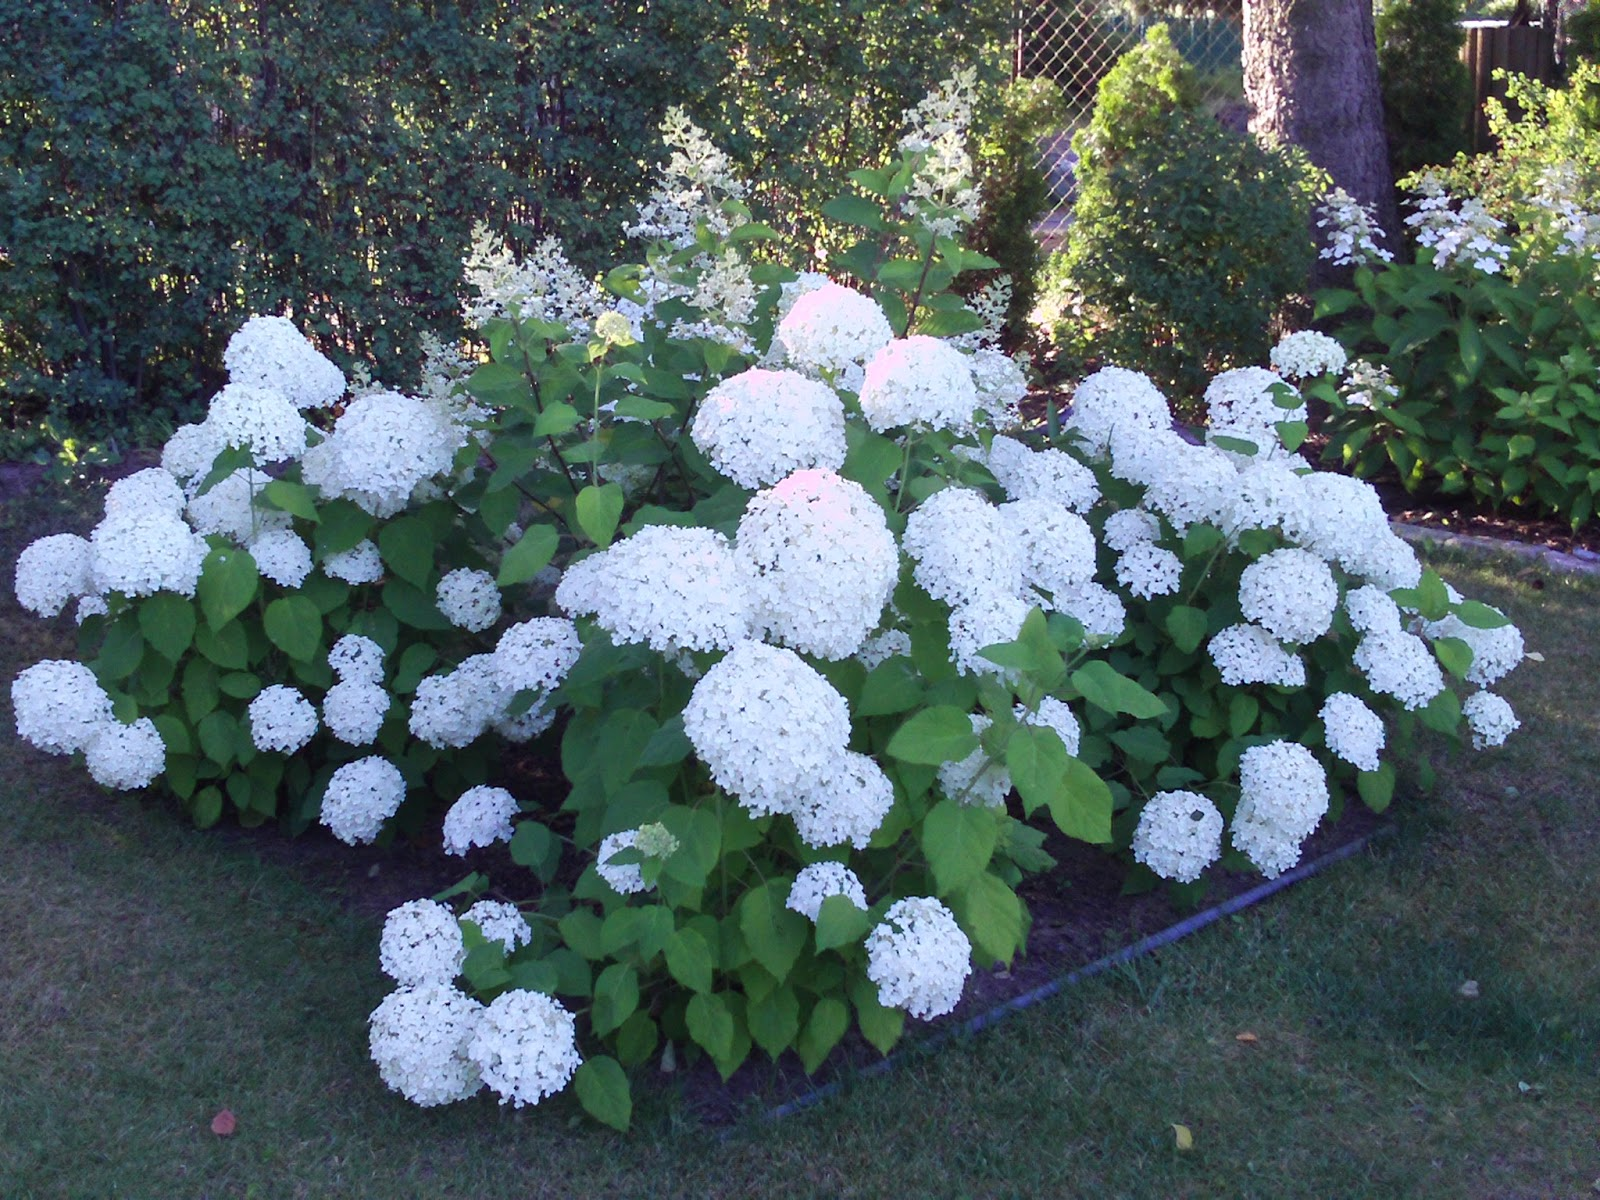 ballhortensie hydrangea arborescens archives. Black Bedroom Furniture Sets. Home Design Ideas